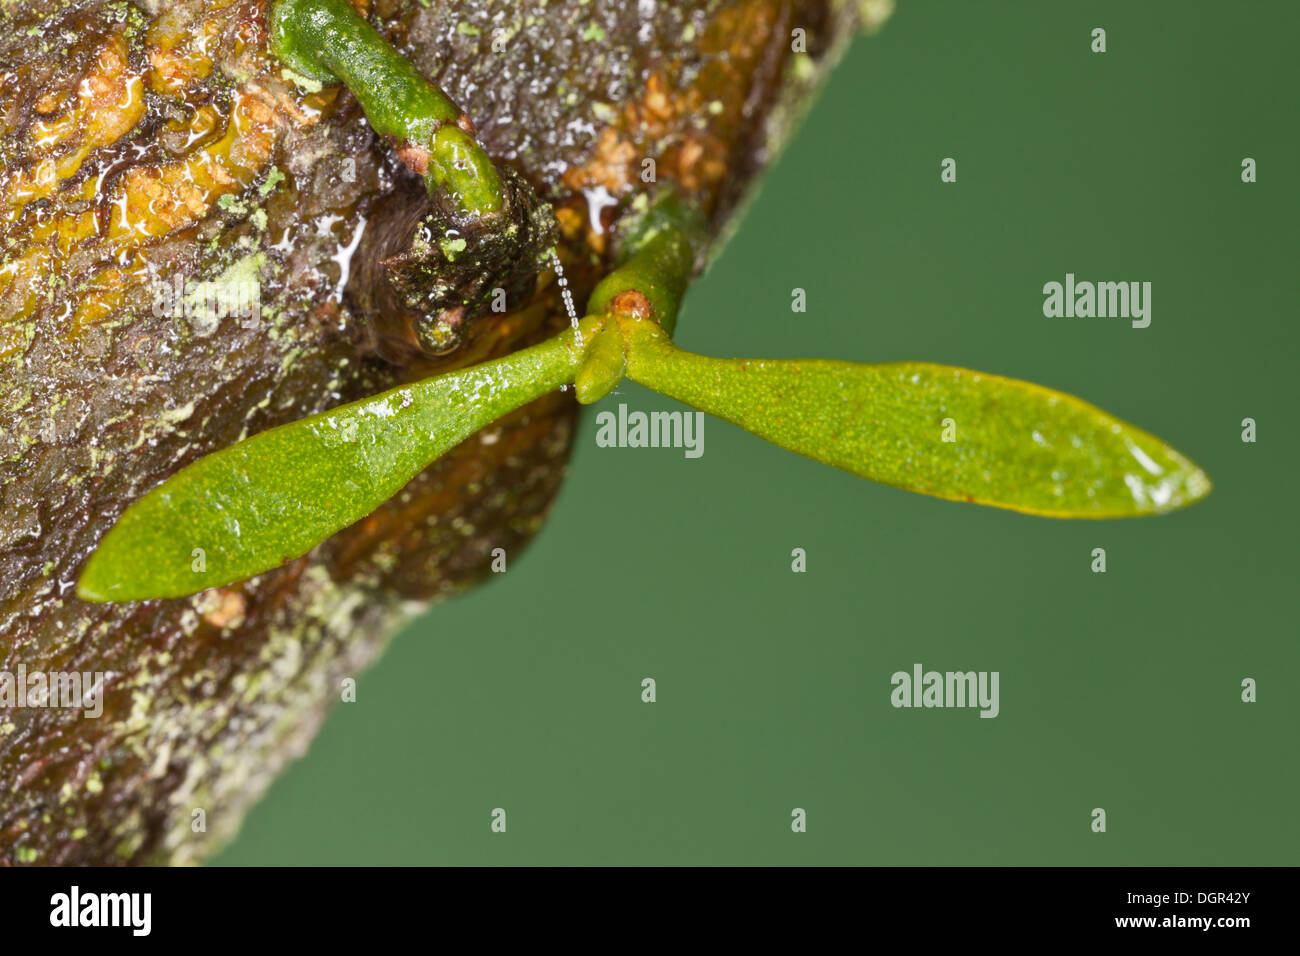 Very young seedling of Mistletoe, Viscum album, with seed-leaves growing on apple bark. Dorset. - Stock Image